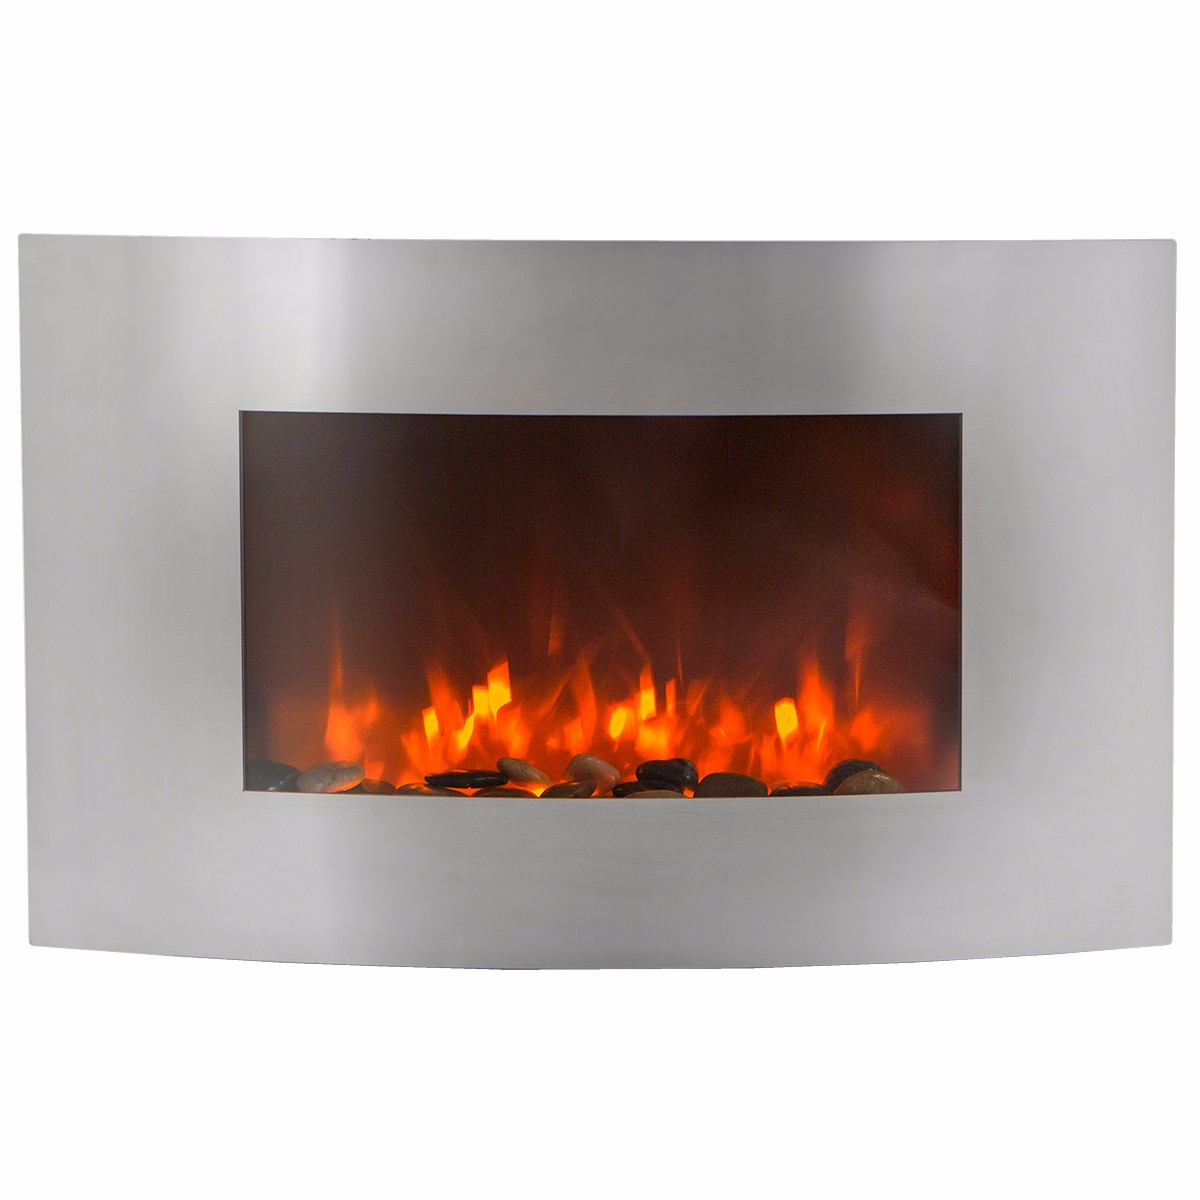 """35""""x23"""" Curved 750W/1500W Electric Heater Fireplace, Stainless Steel"""